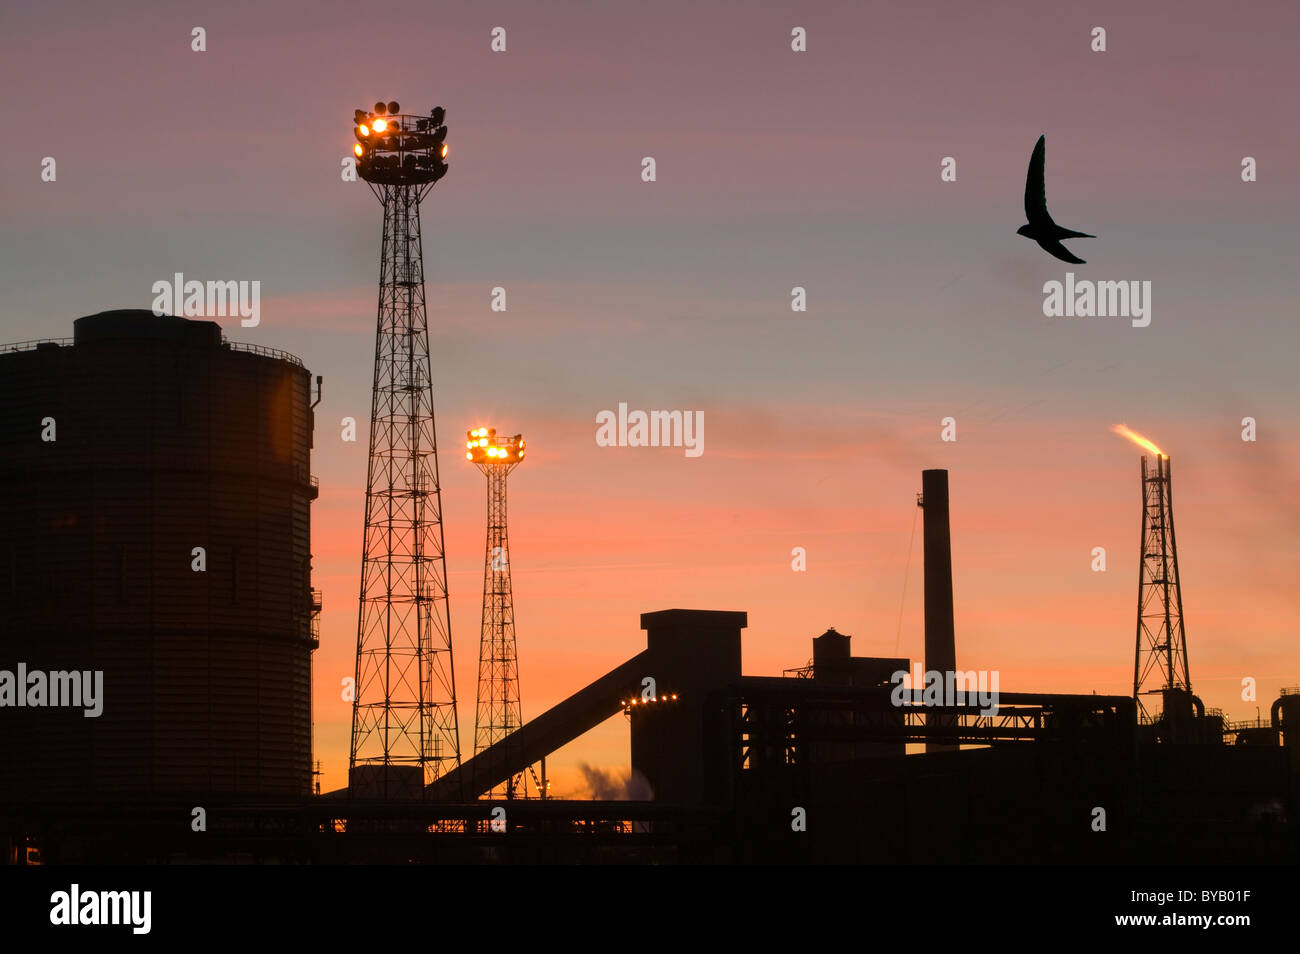 Emmissions from the Corus steelworks at Redcar UK, with a Swift flying past. - Stock Image